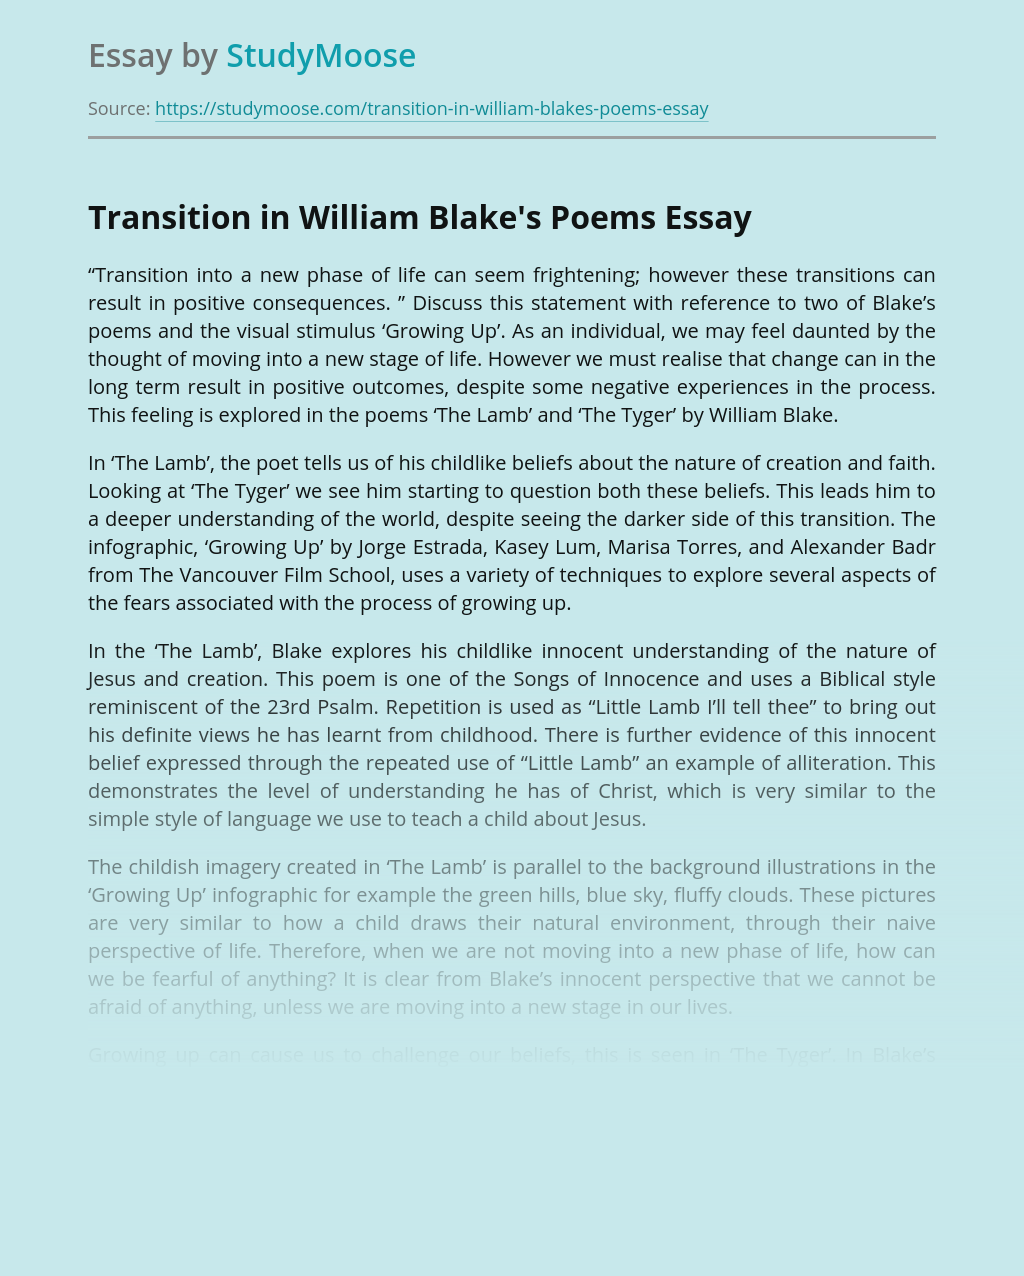 Transition in William Blake's Poems